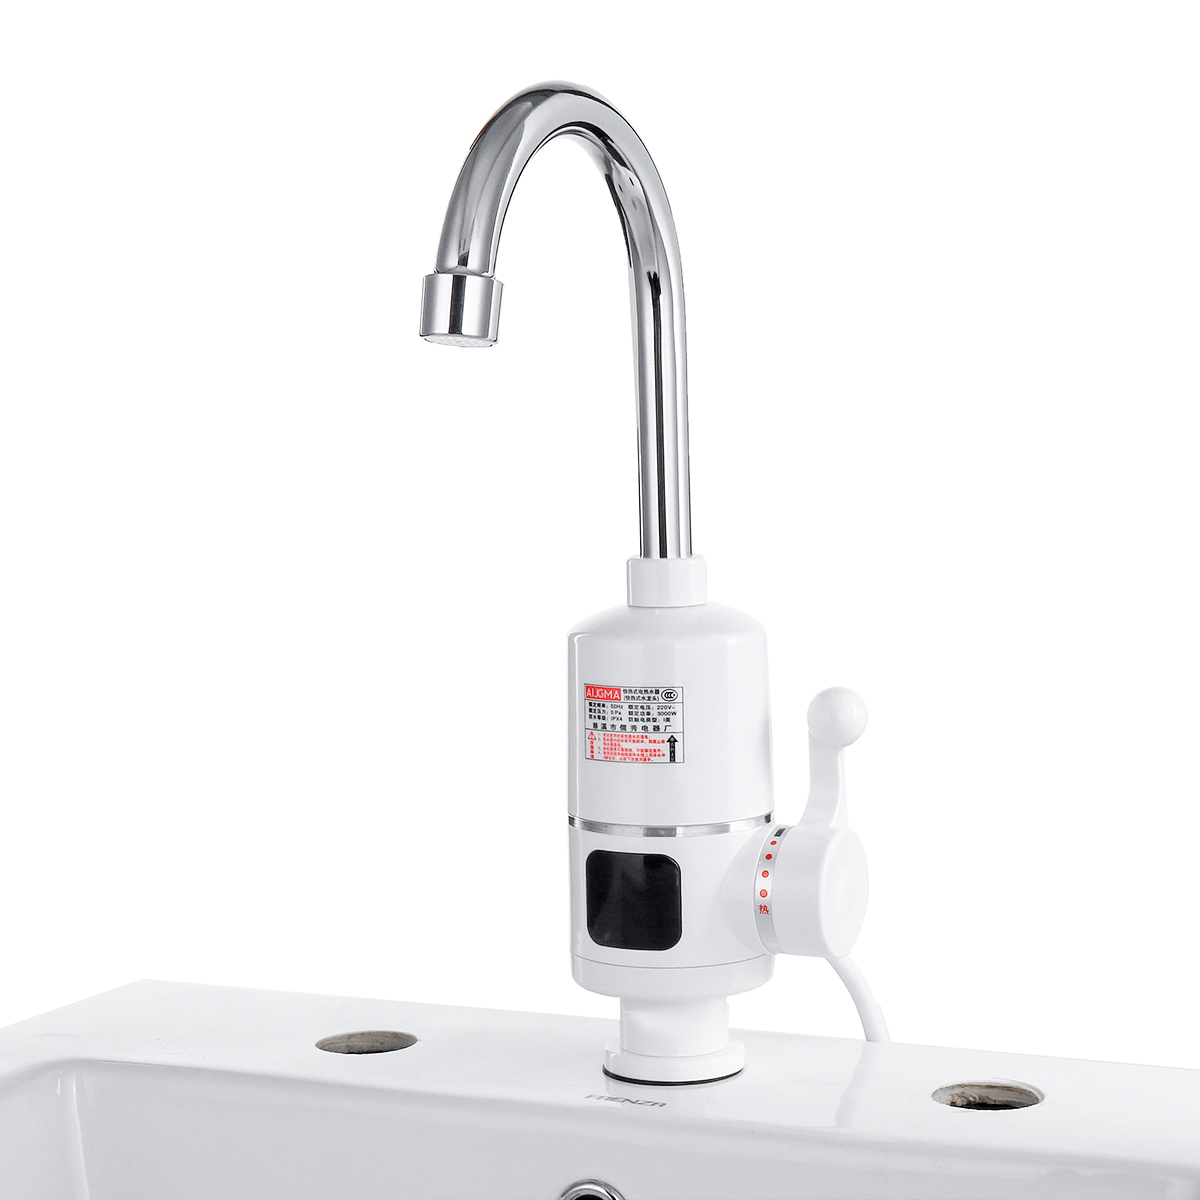 Electric Hot Water Heater >> 3000w Tankless Instant Electric Hot Water Heater Faucet Led Kitchen Bathroom Heating Tap